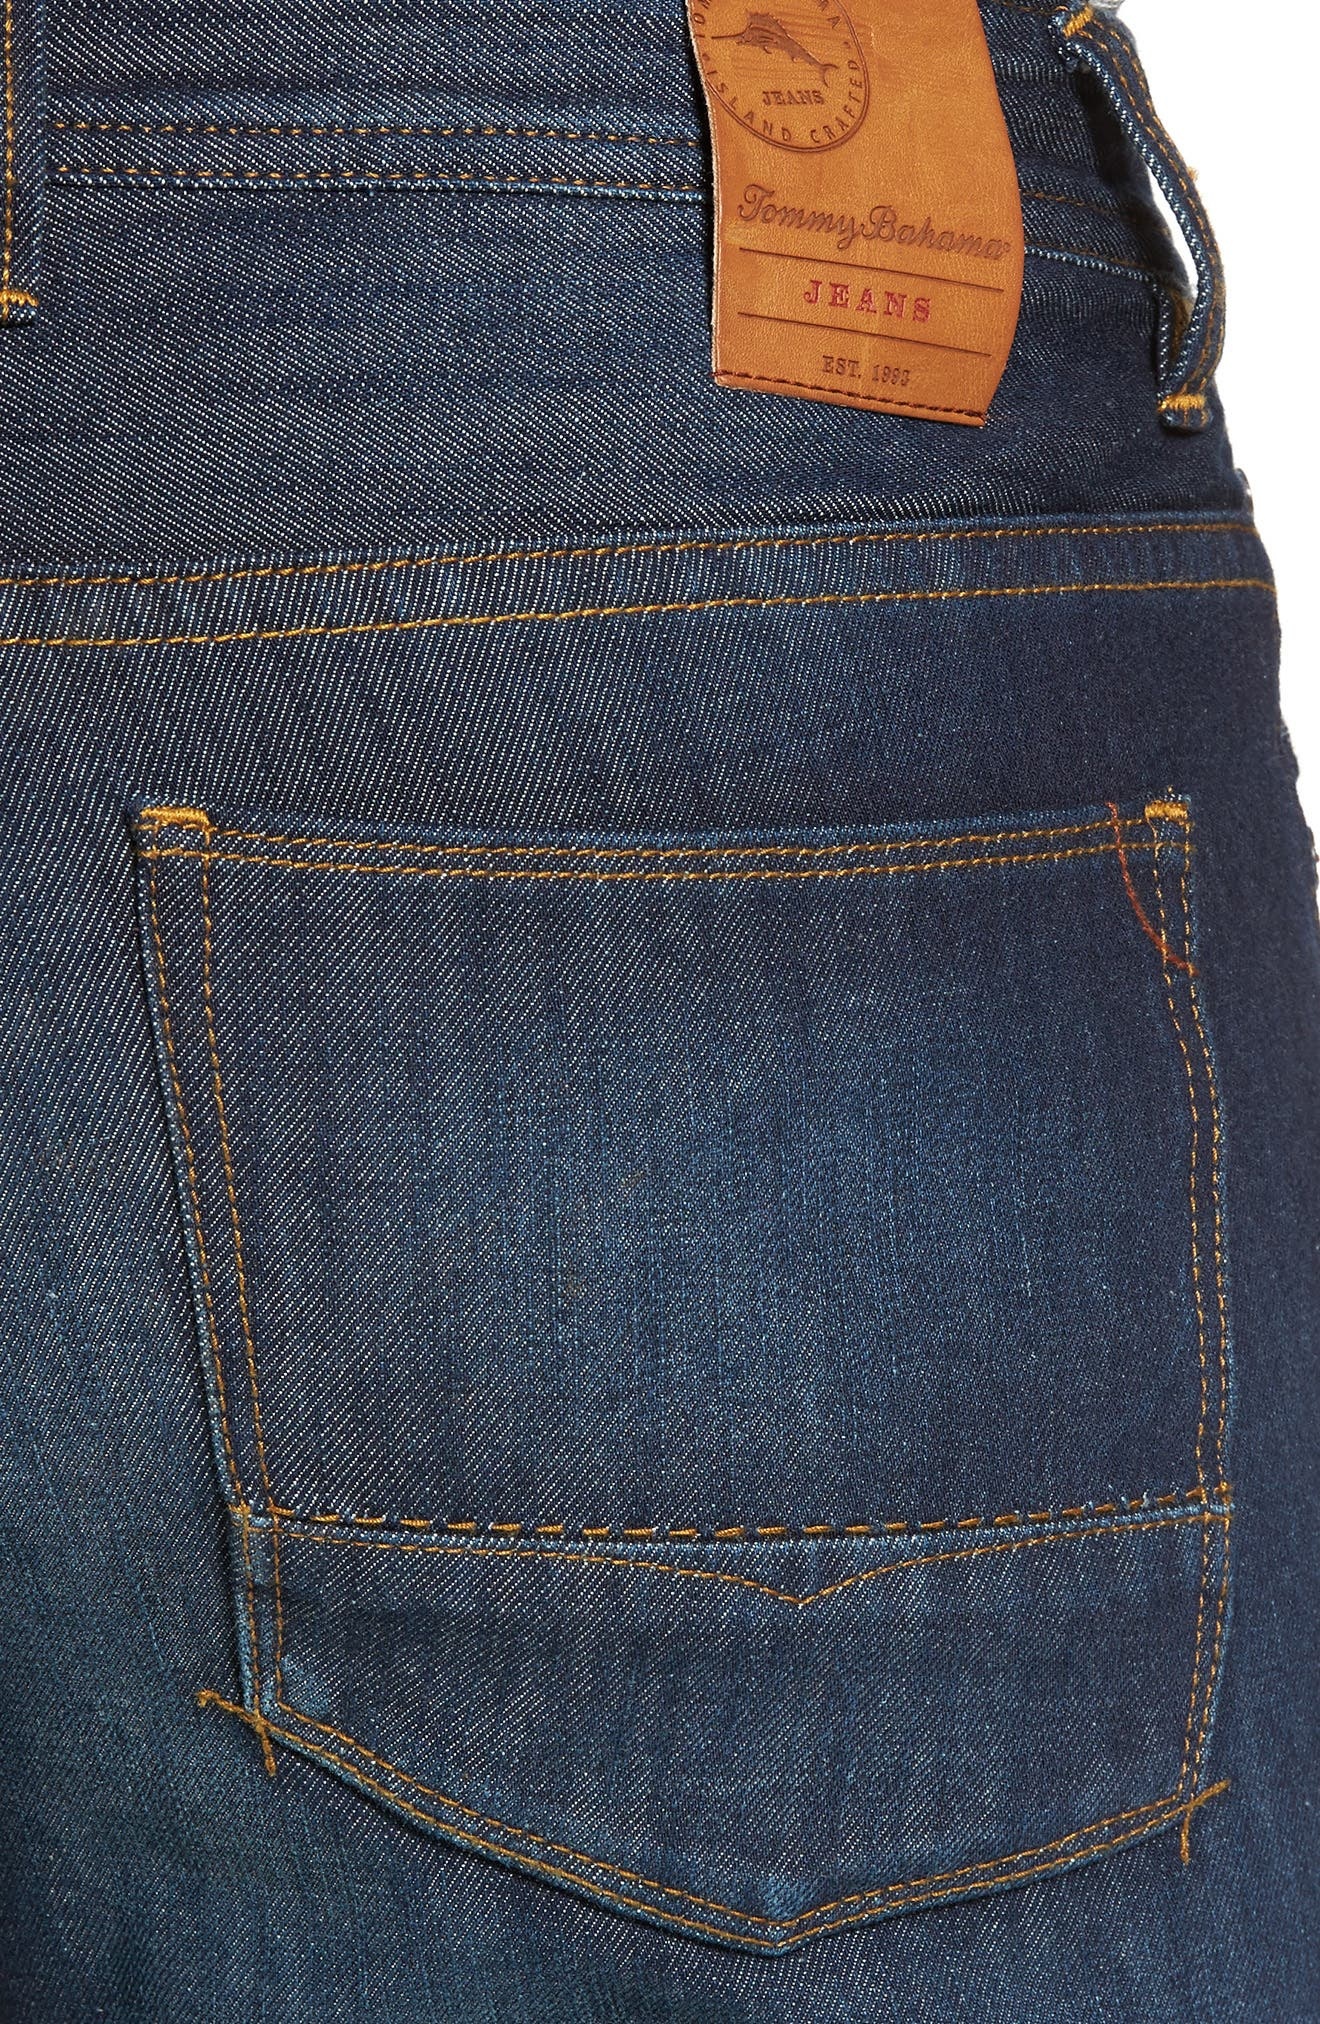 Barbados Straight Leg Jeans,                             Alternate thumbnail 4, color,                             401